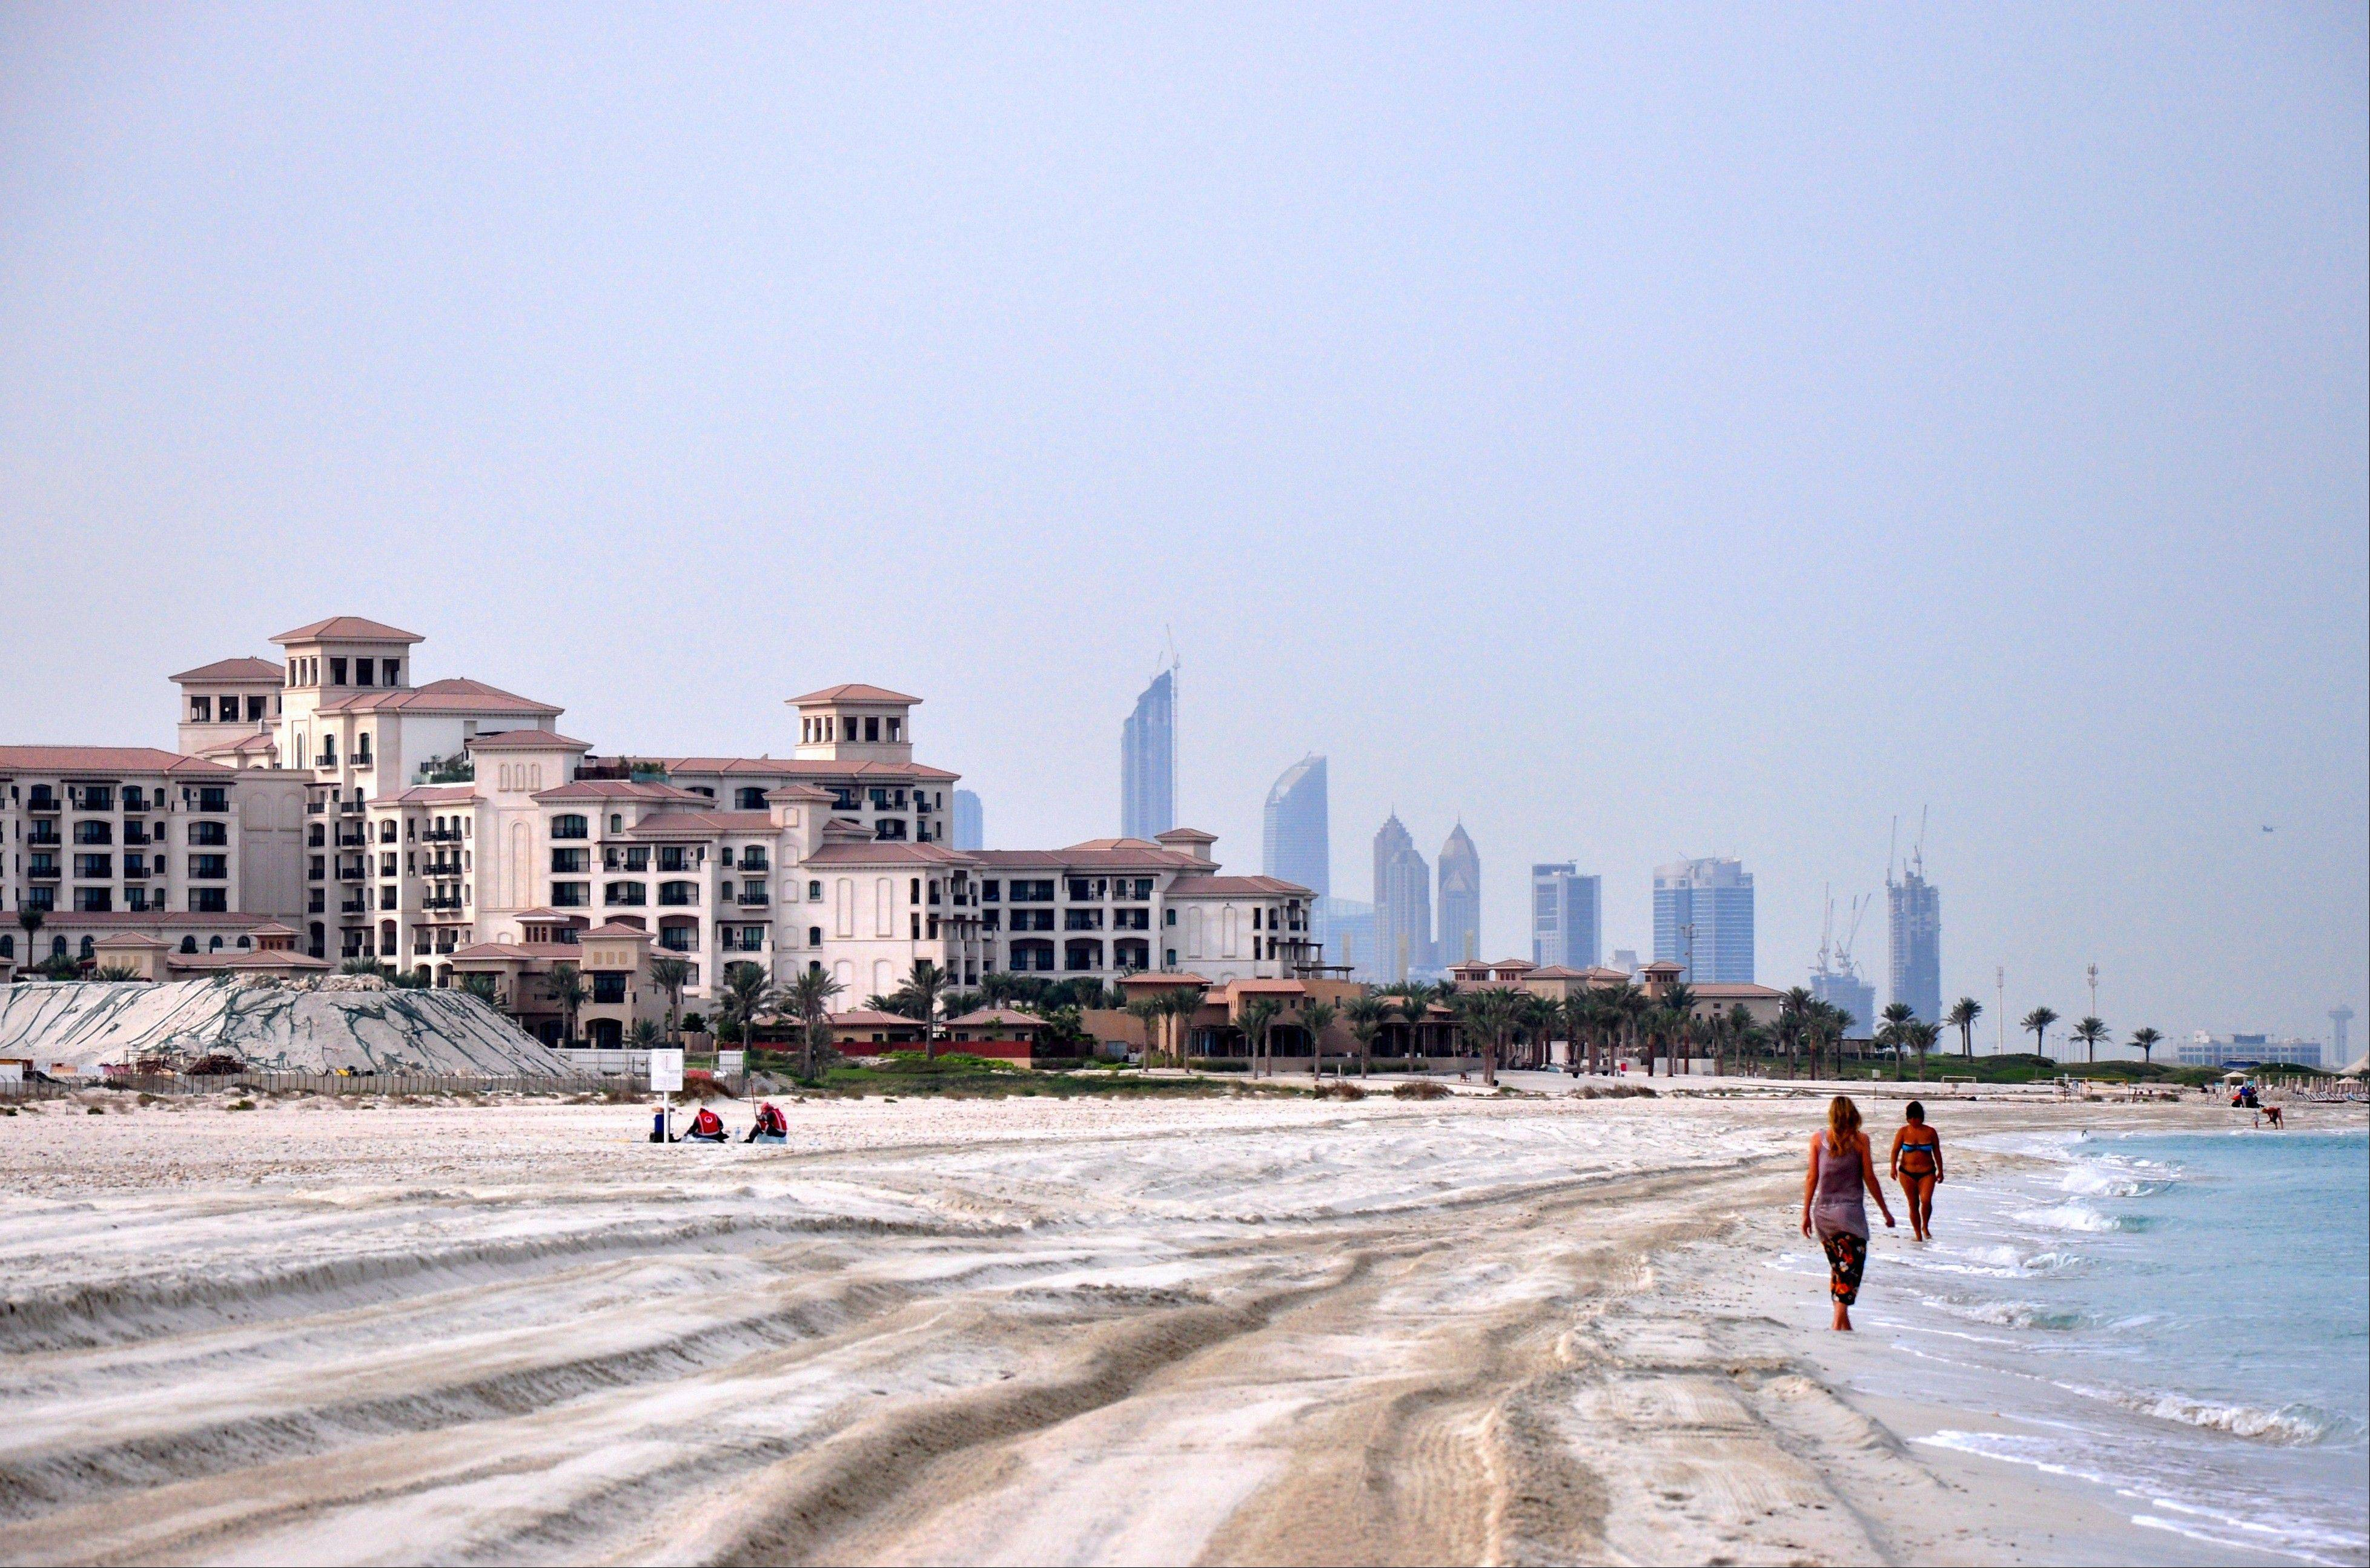 The beach on Saadiyat Island stretches for six miles along the Persian Gulf. Just a half-hour from Abu Dhabi city, it has the ambience of a retreat to a tropical resort.